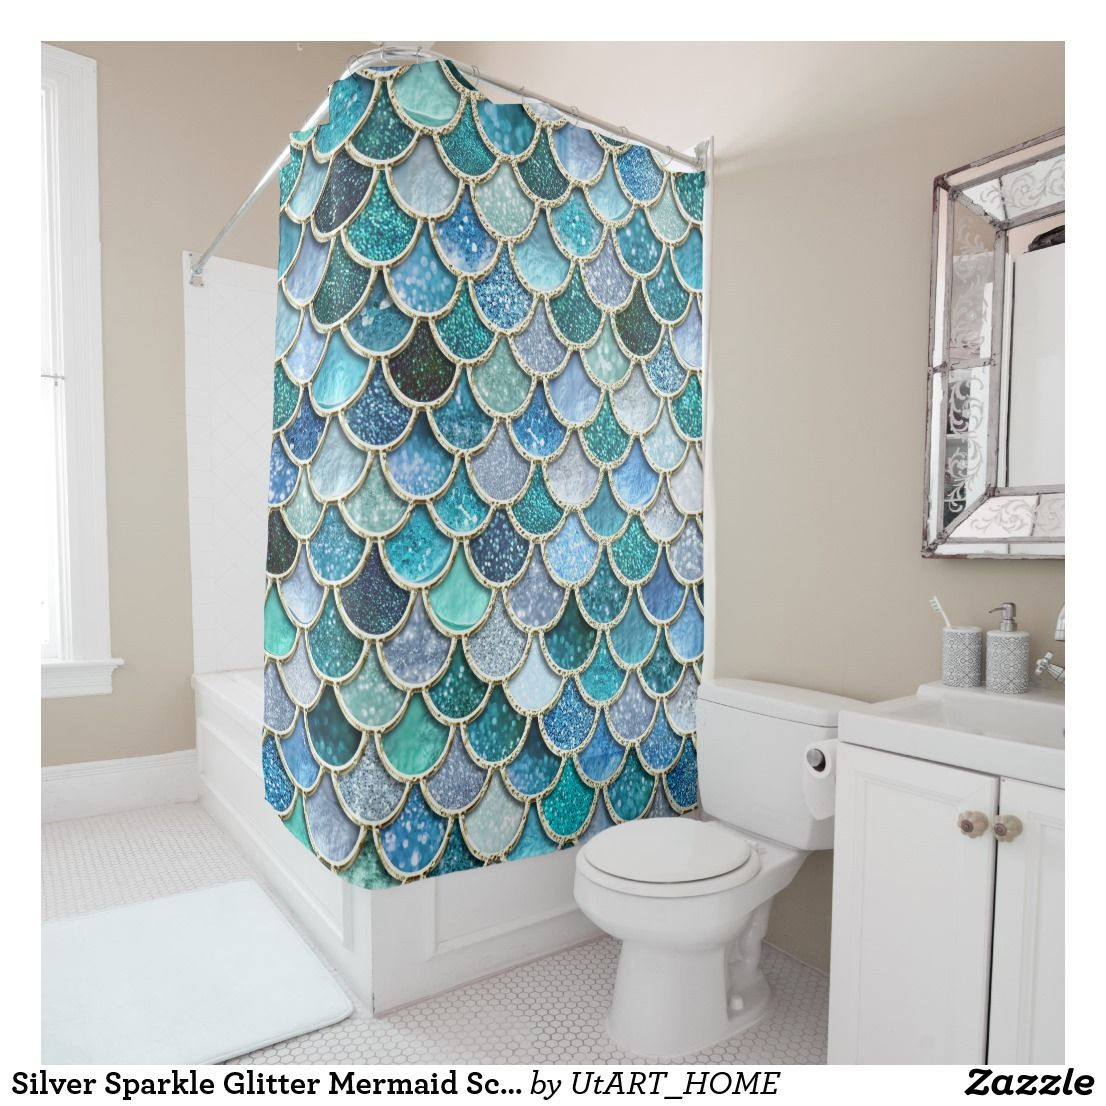 The Glittery World Of Silver Bedroom Ideas: Silver Sparkle Glitter Mermaid Scales Shower Curtain